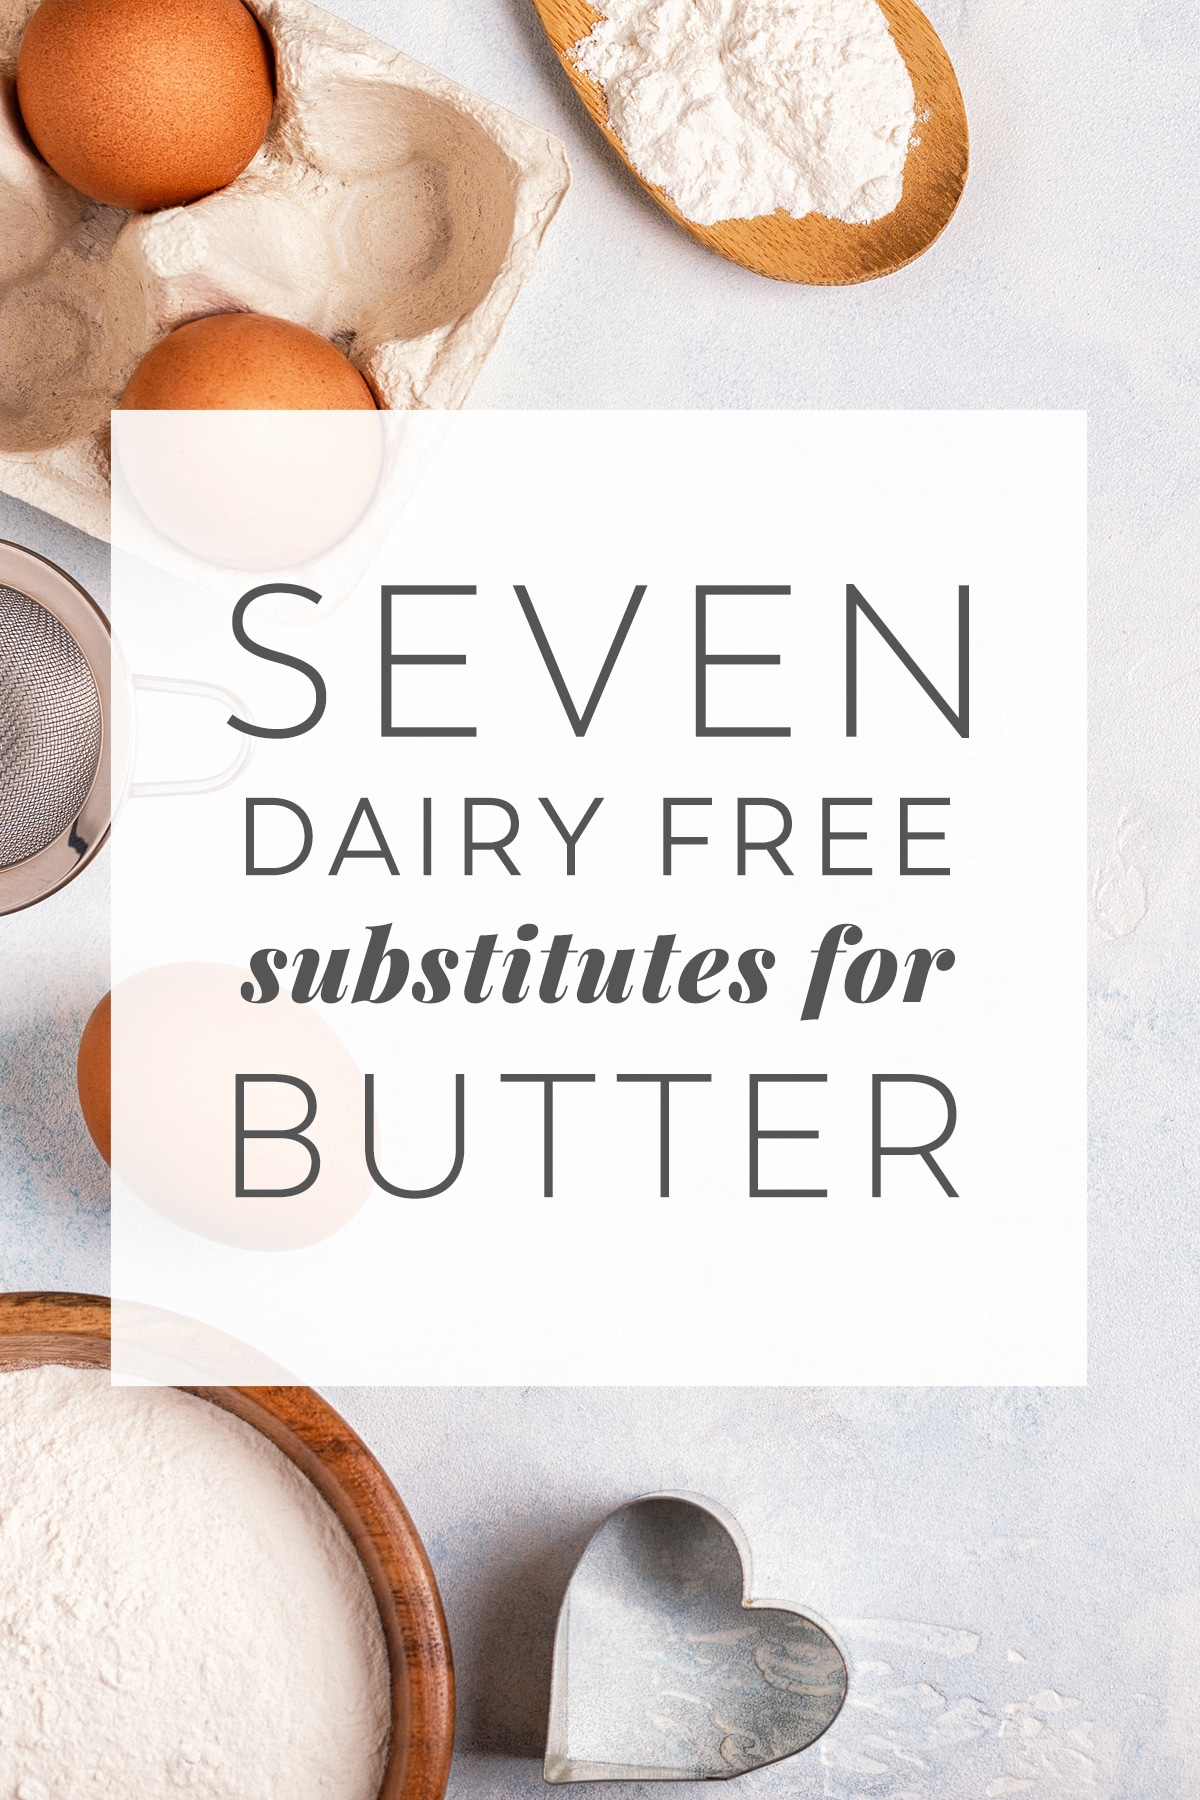 Seemly Text Overlay Free Substitutes Baking Ingredients Butter Simply Whisked Is Egg Dairy Or Meat Is Egg Dairy Or Poultry Dairy Free Substitutes nice food Is Egg Dairy